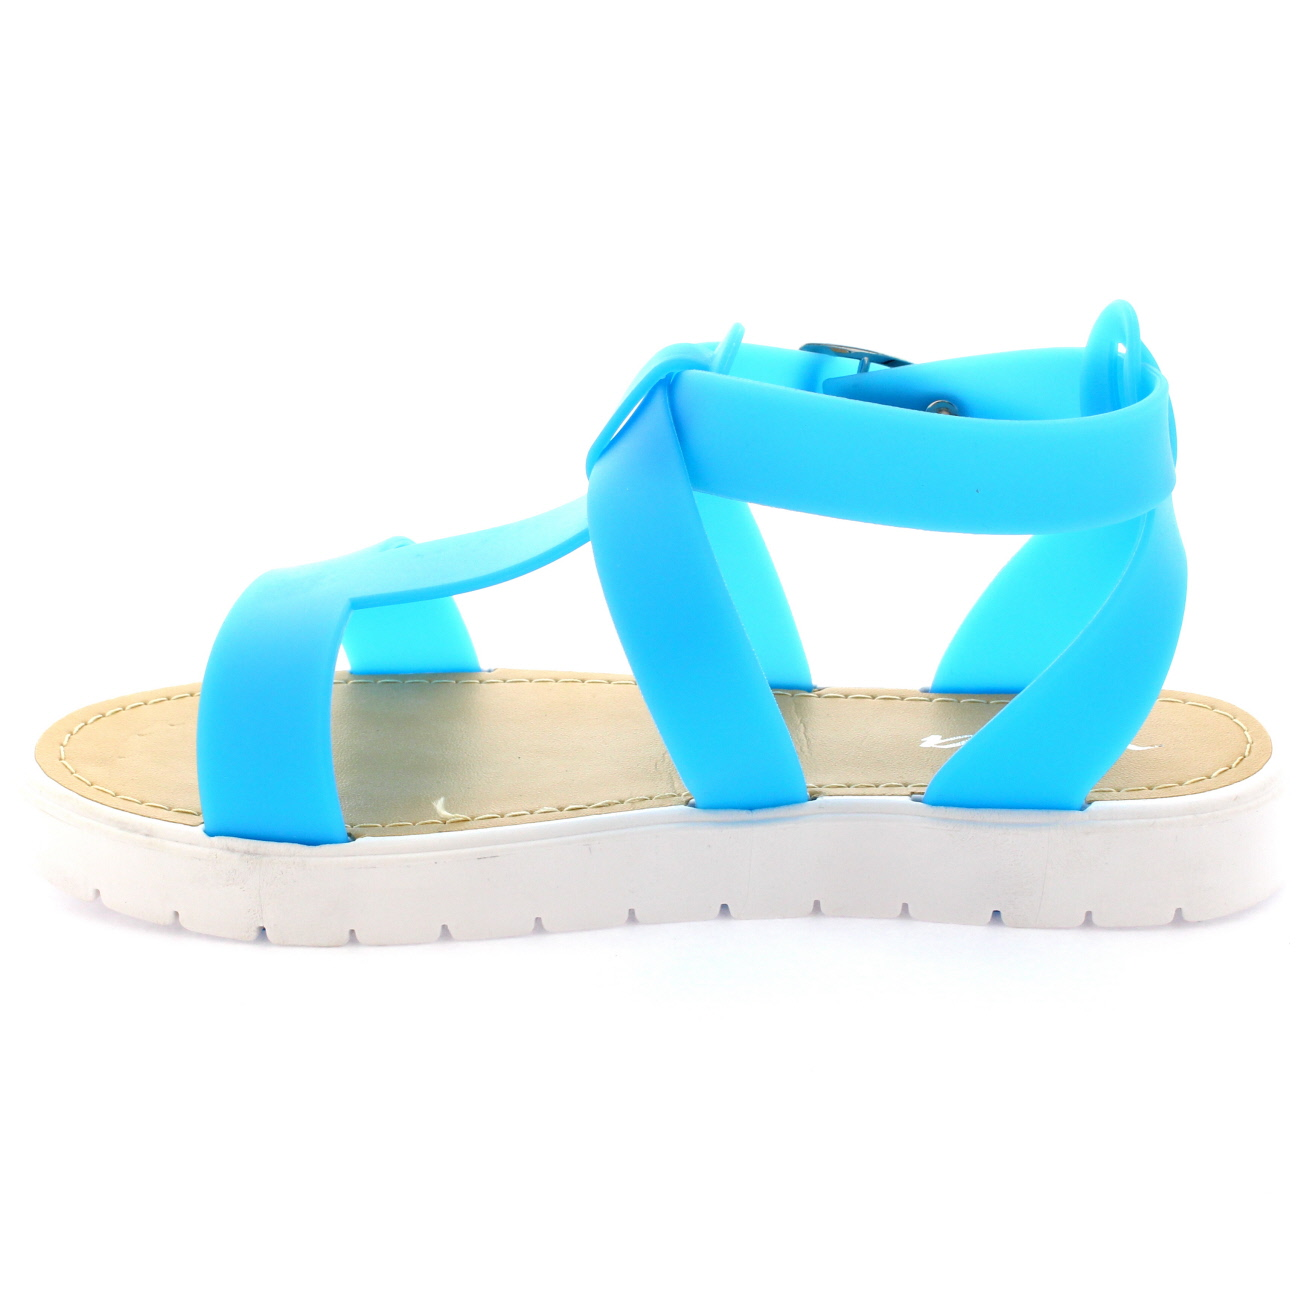 3ac2895b6a3b Womens Open Toe Shoes Cleated Sole White Platform T-Bar Jelly ...